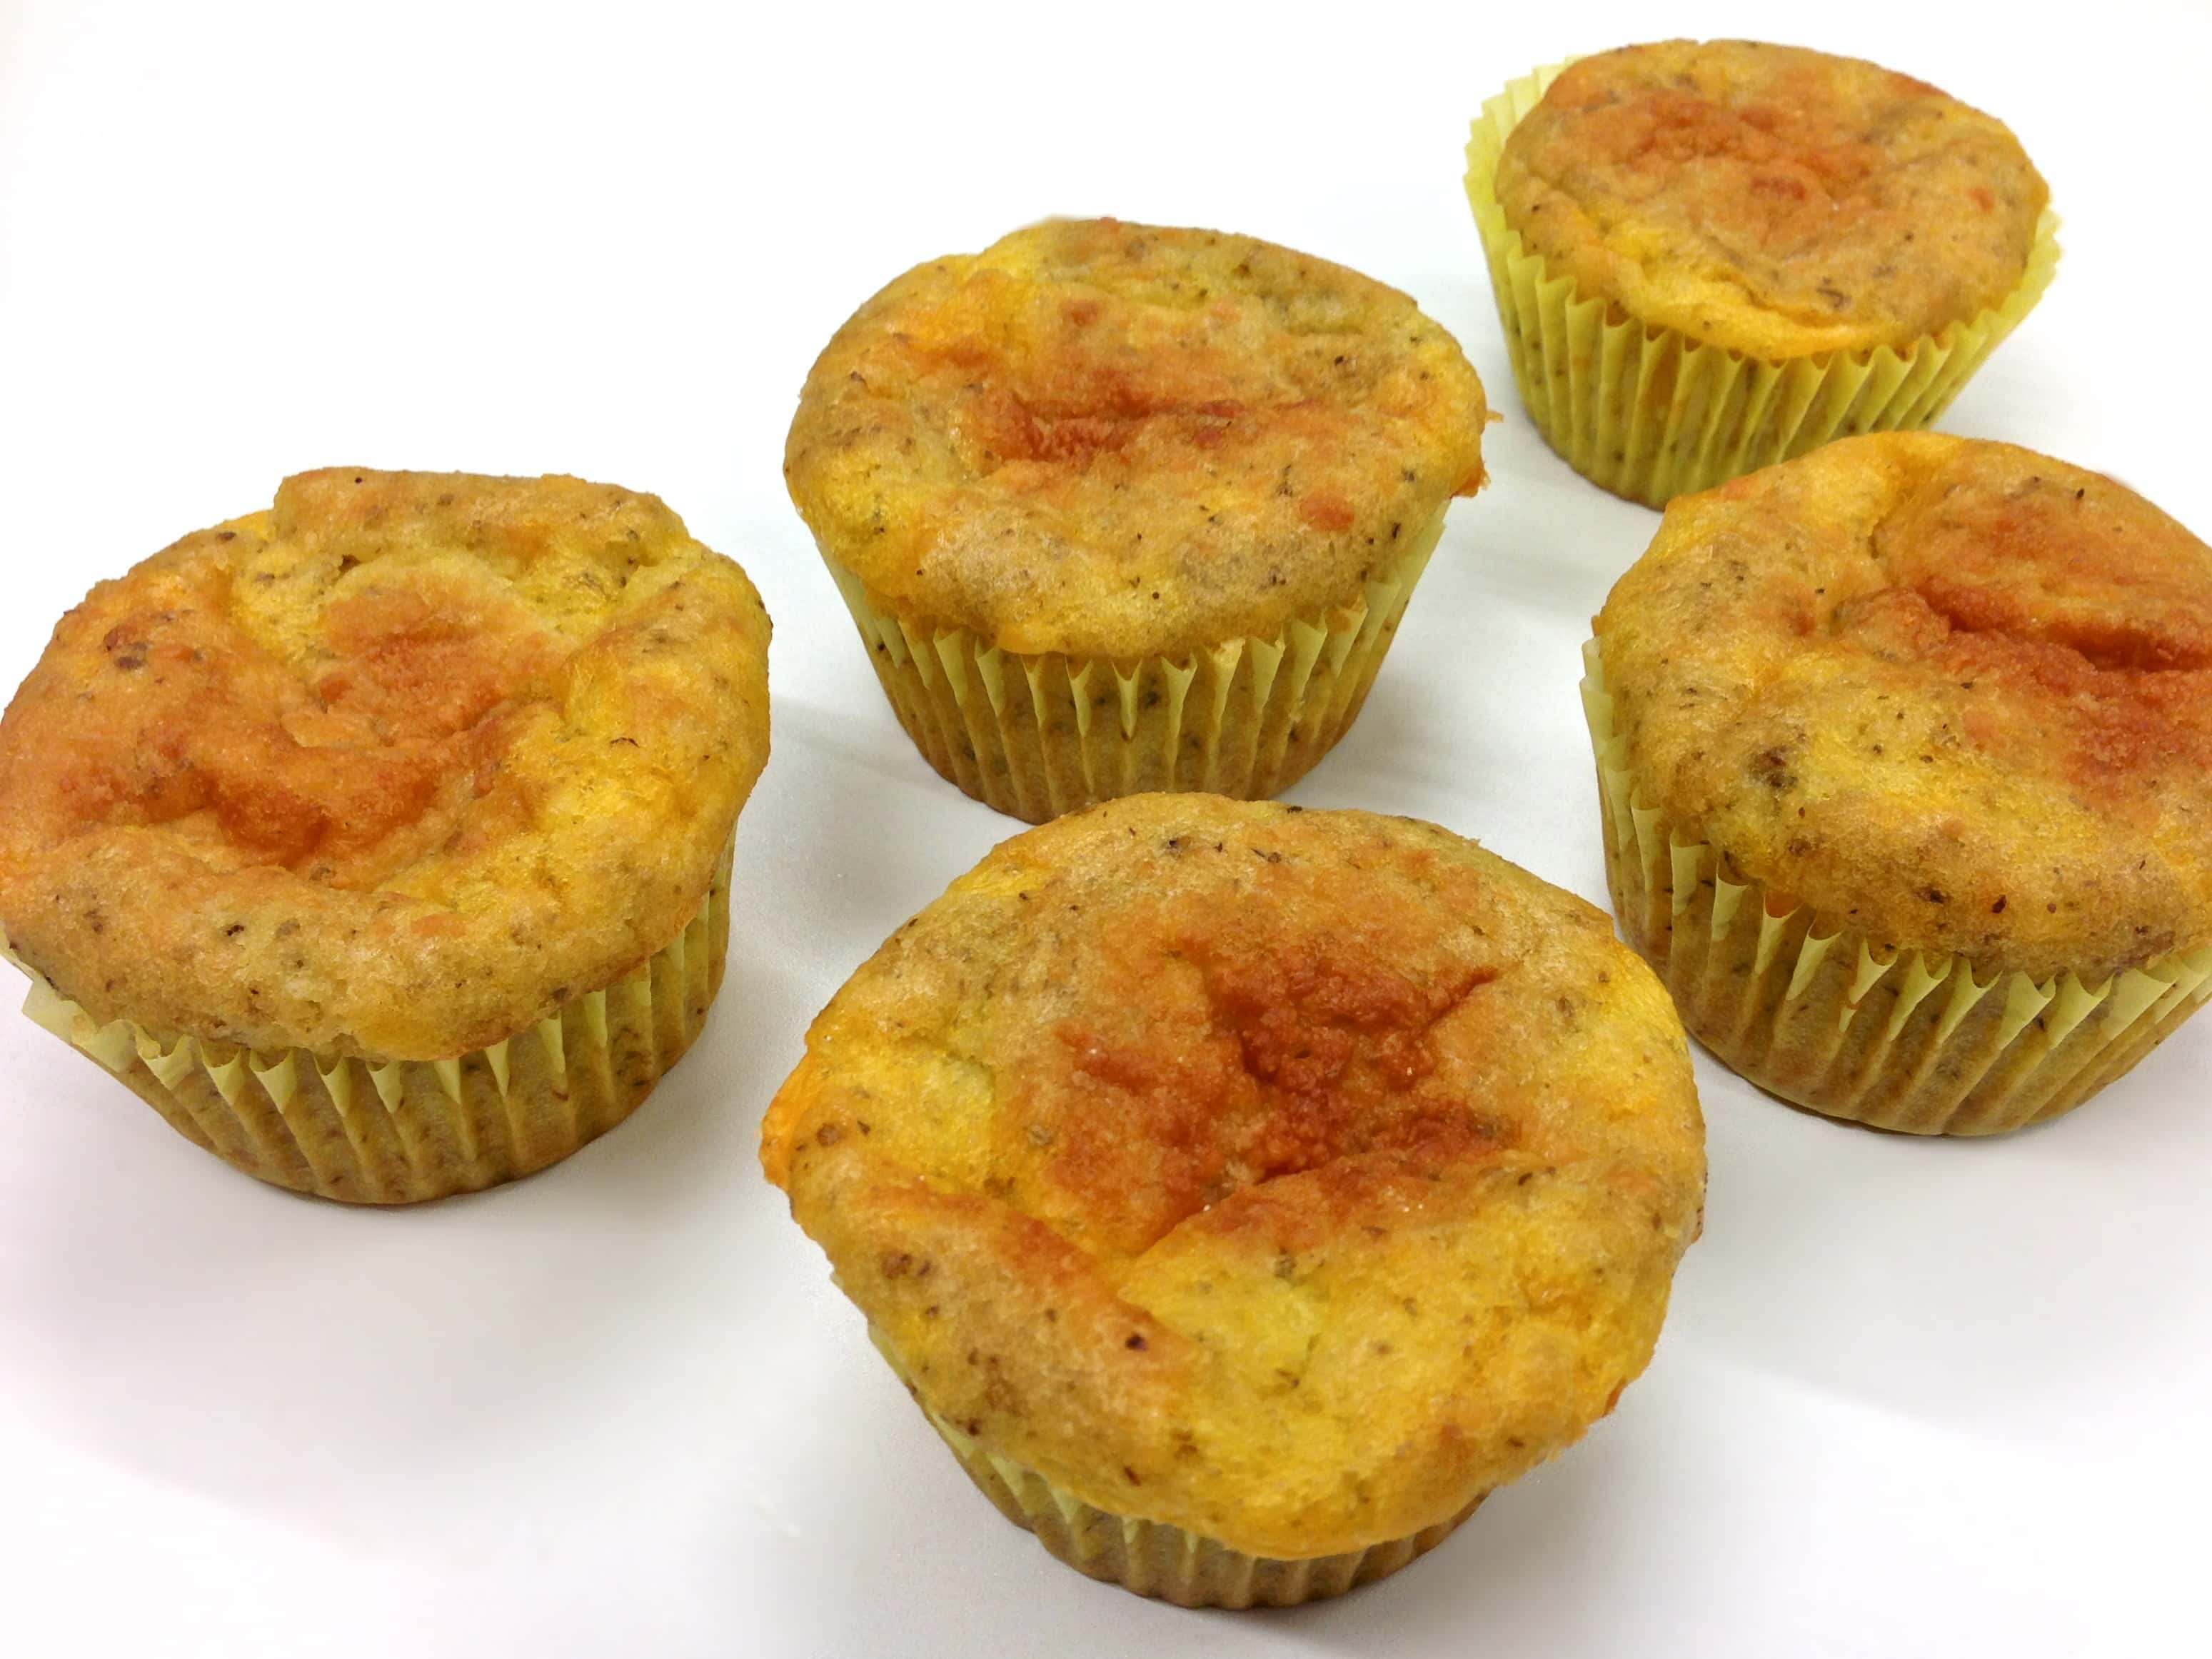 Grain Free Cheesy Oregano Muffin (Gluten Free, Paleo)